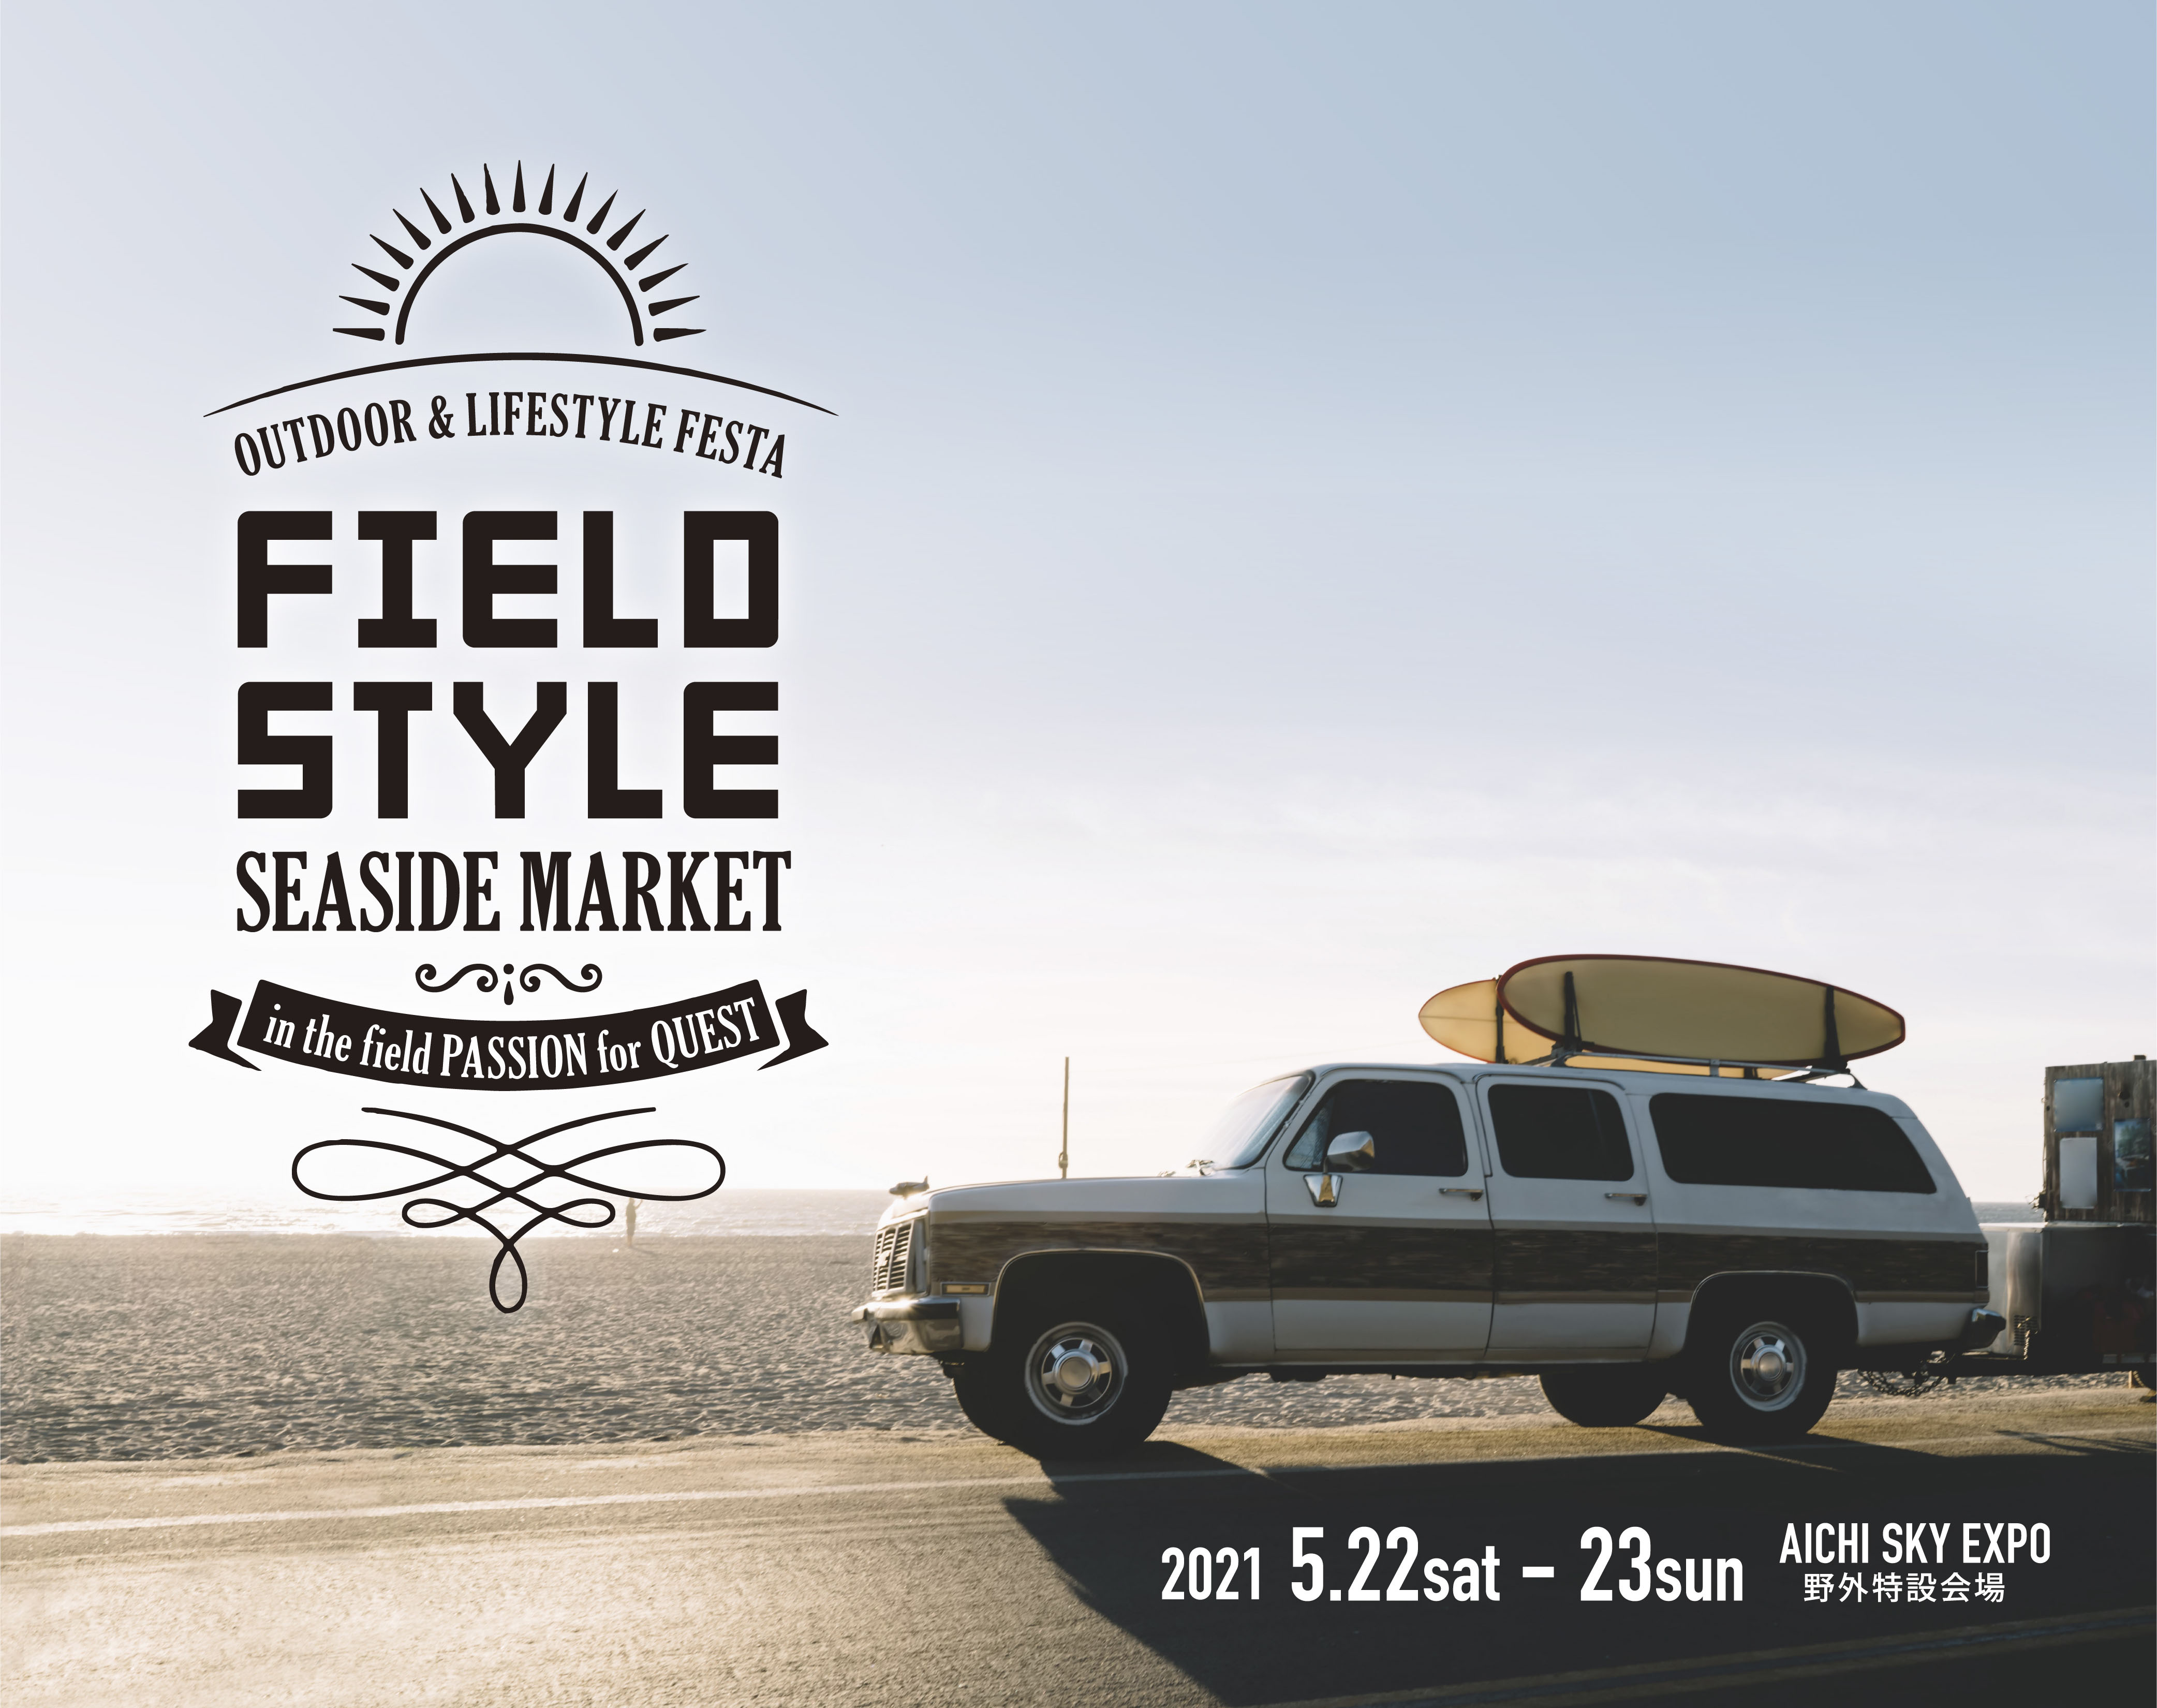 【FIELDSTYLE SEASIDE MARKET 2021】LIVERAL - BOOTH